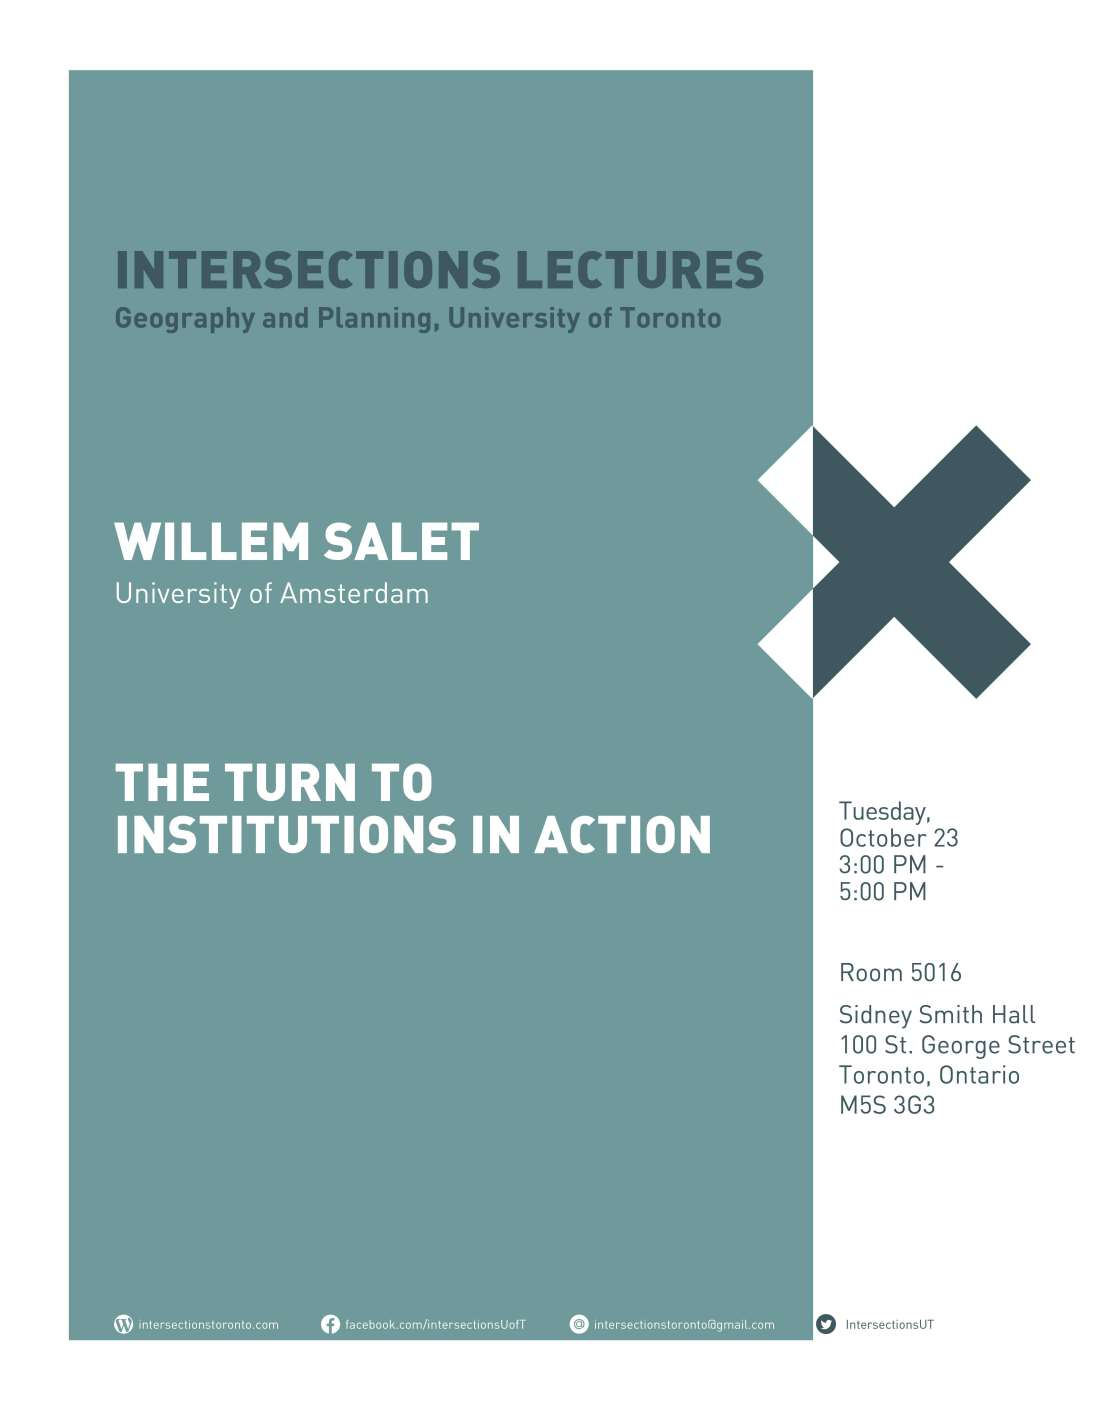 Intersections 2018-19 Posters_Willem Salet